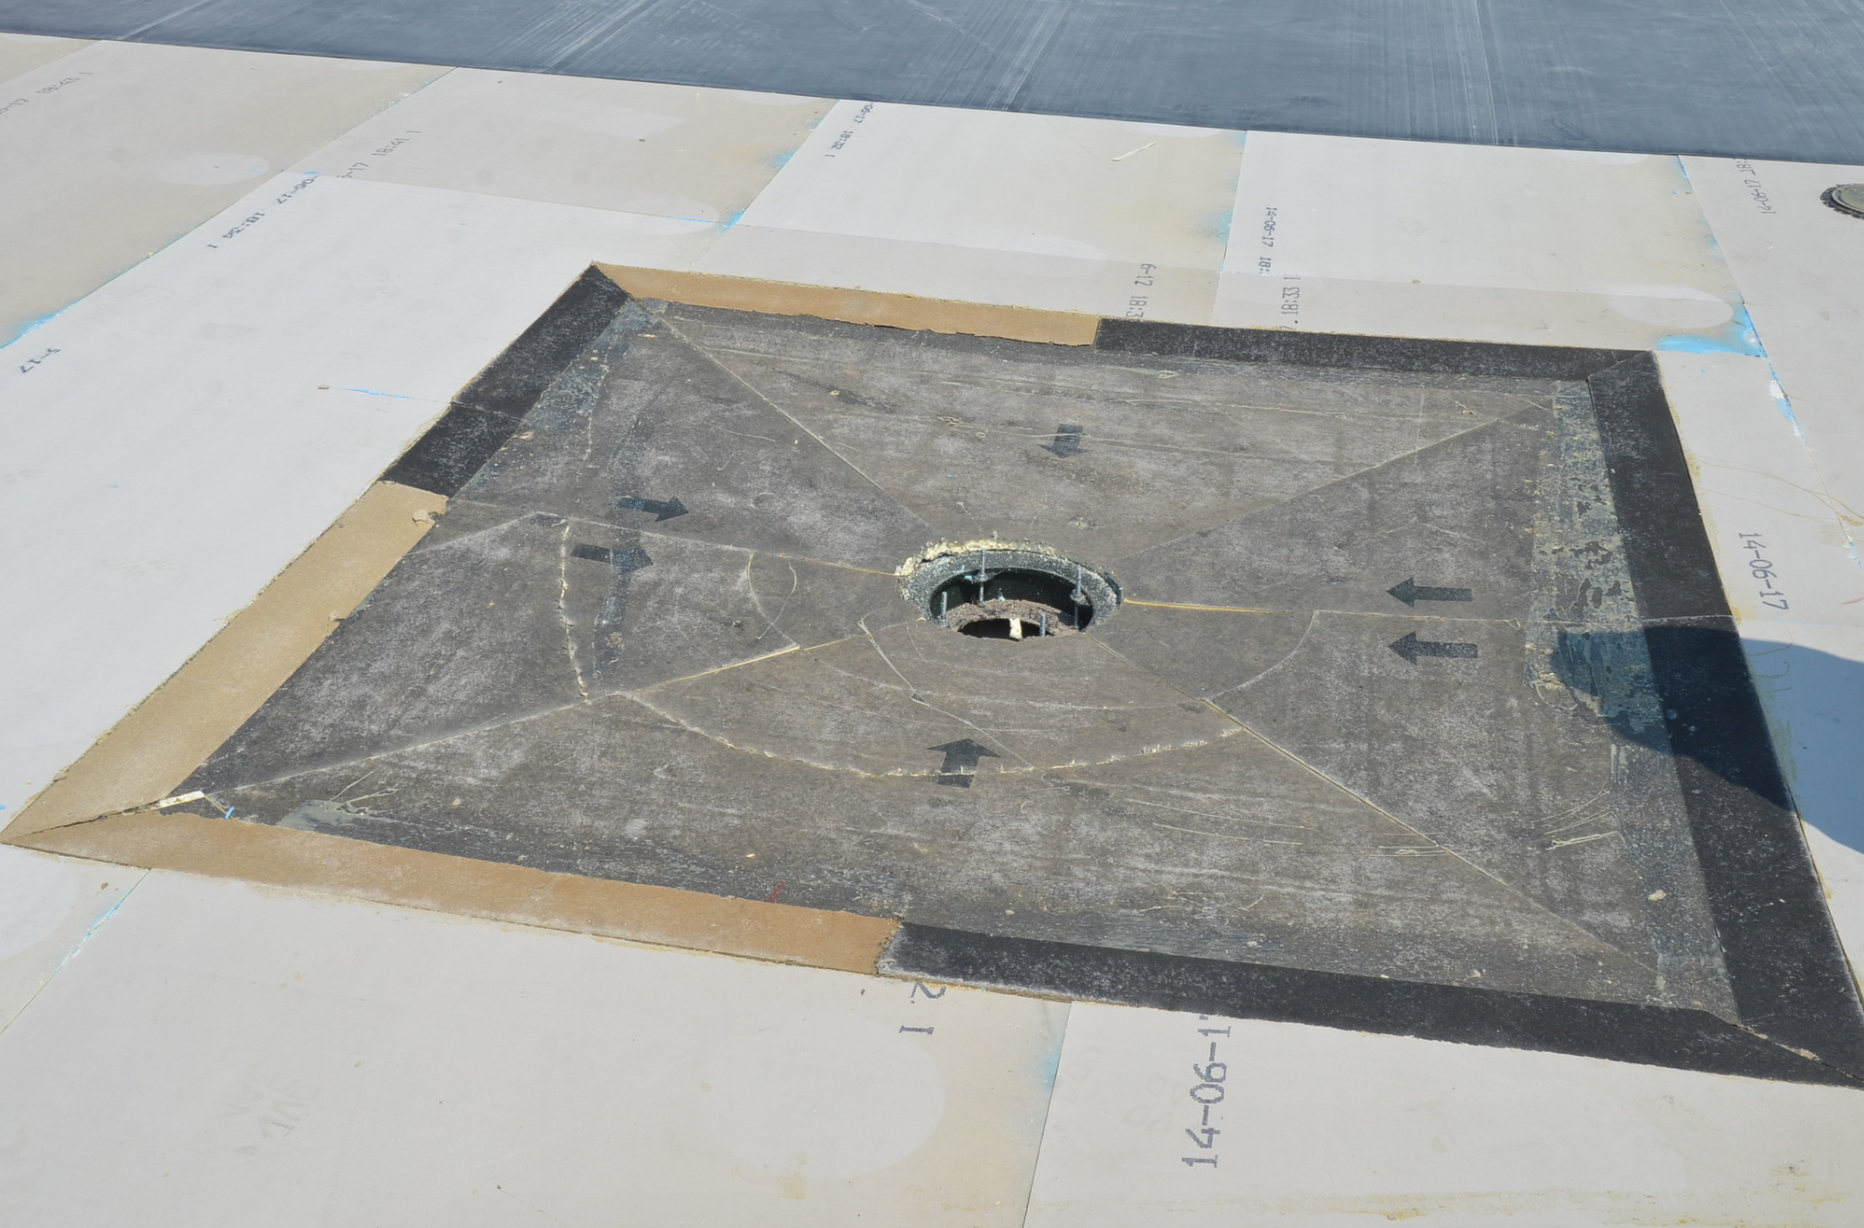 4 Common Causes of Inadequate Drainage on Low-Slope Roofs